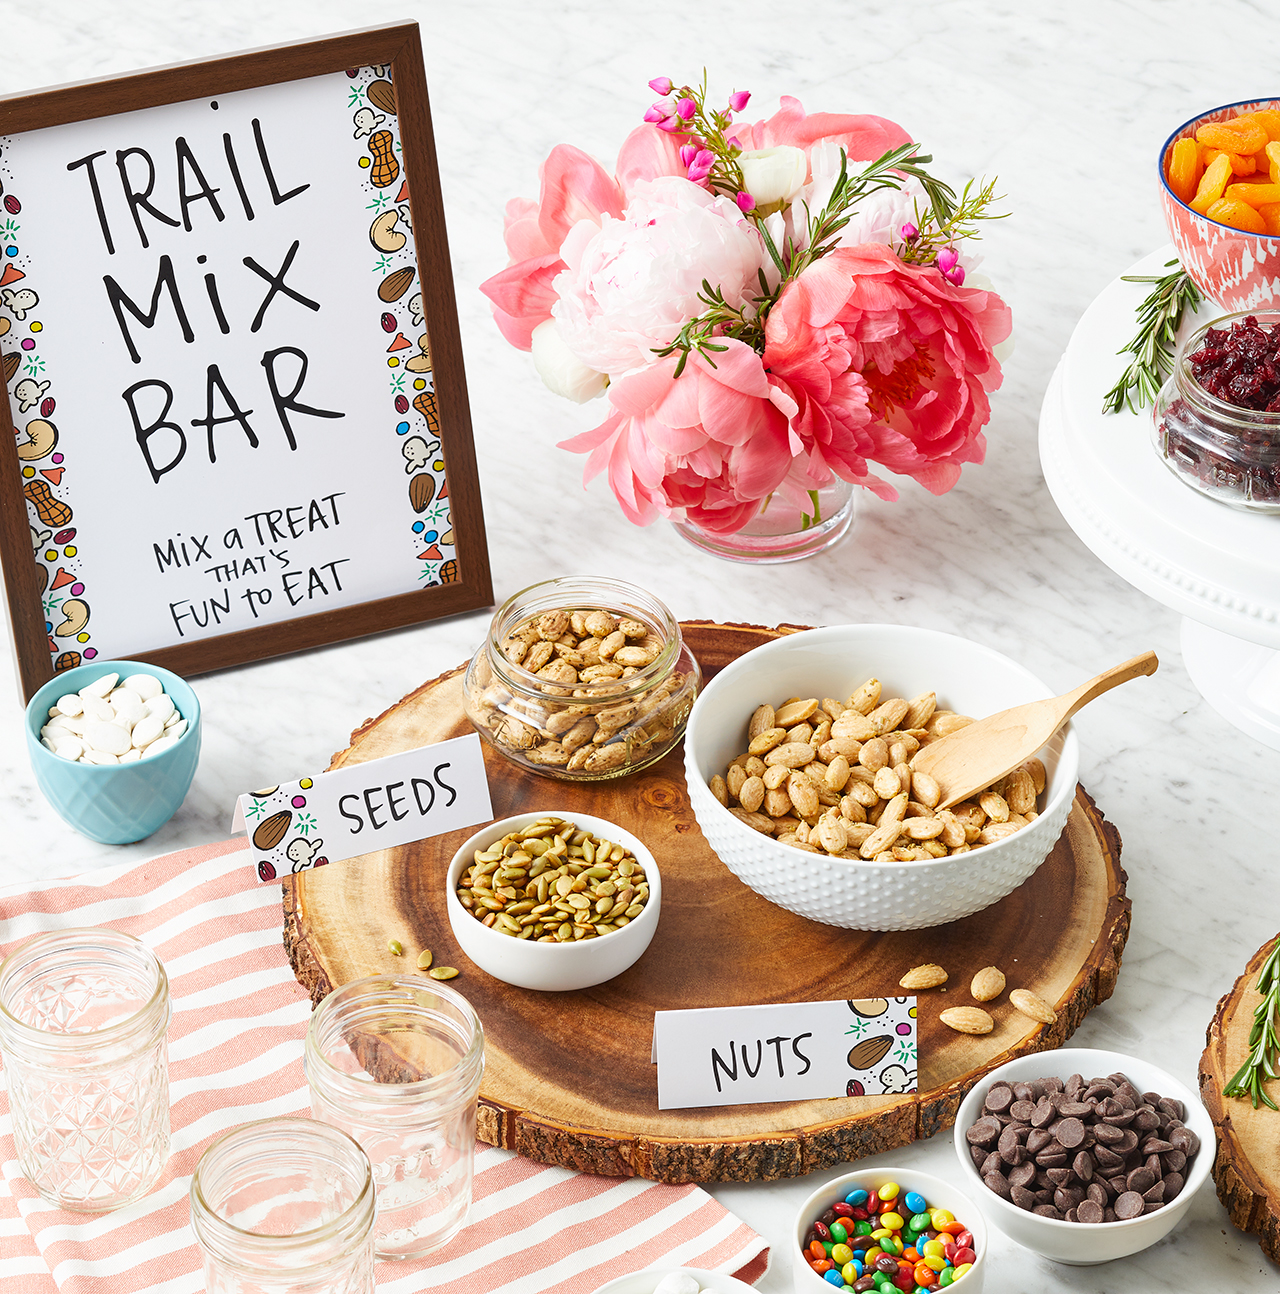 seeds and nuts trail mix ingredients with sign